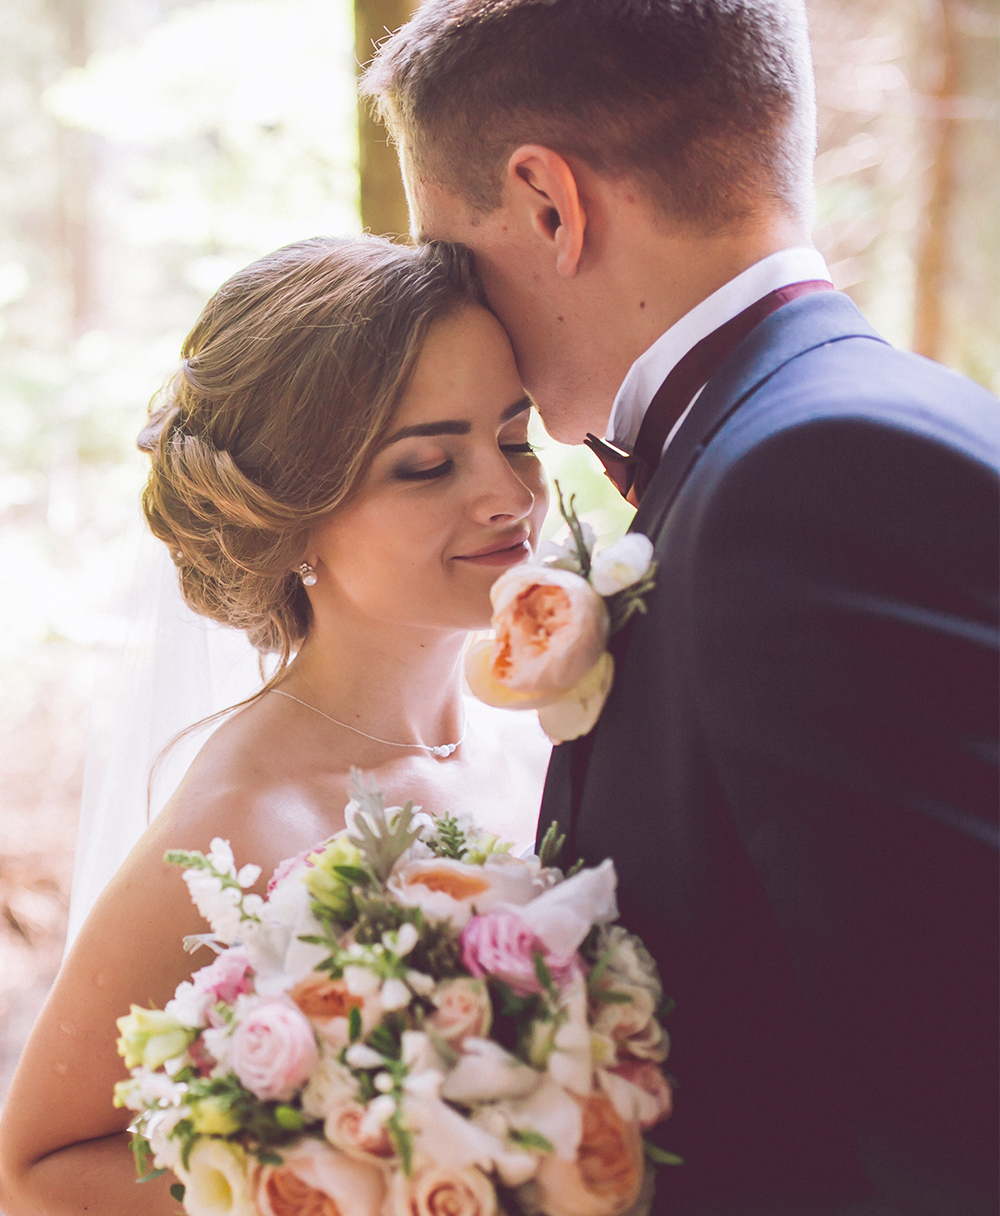 How to Find a Best Place For New Wedding?